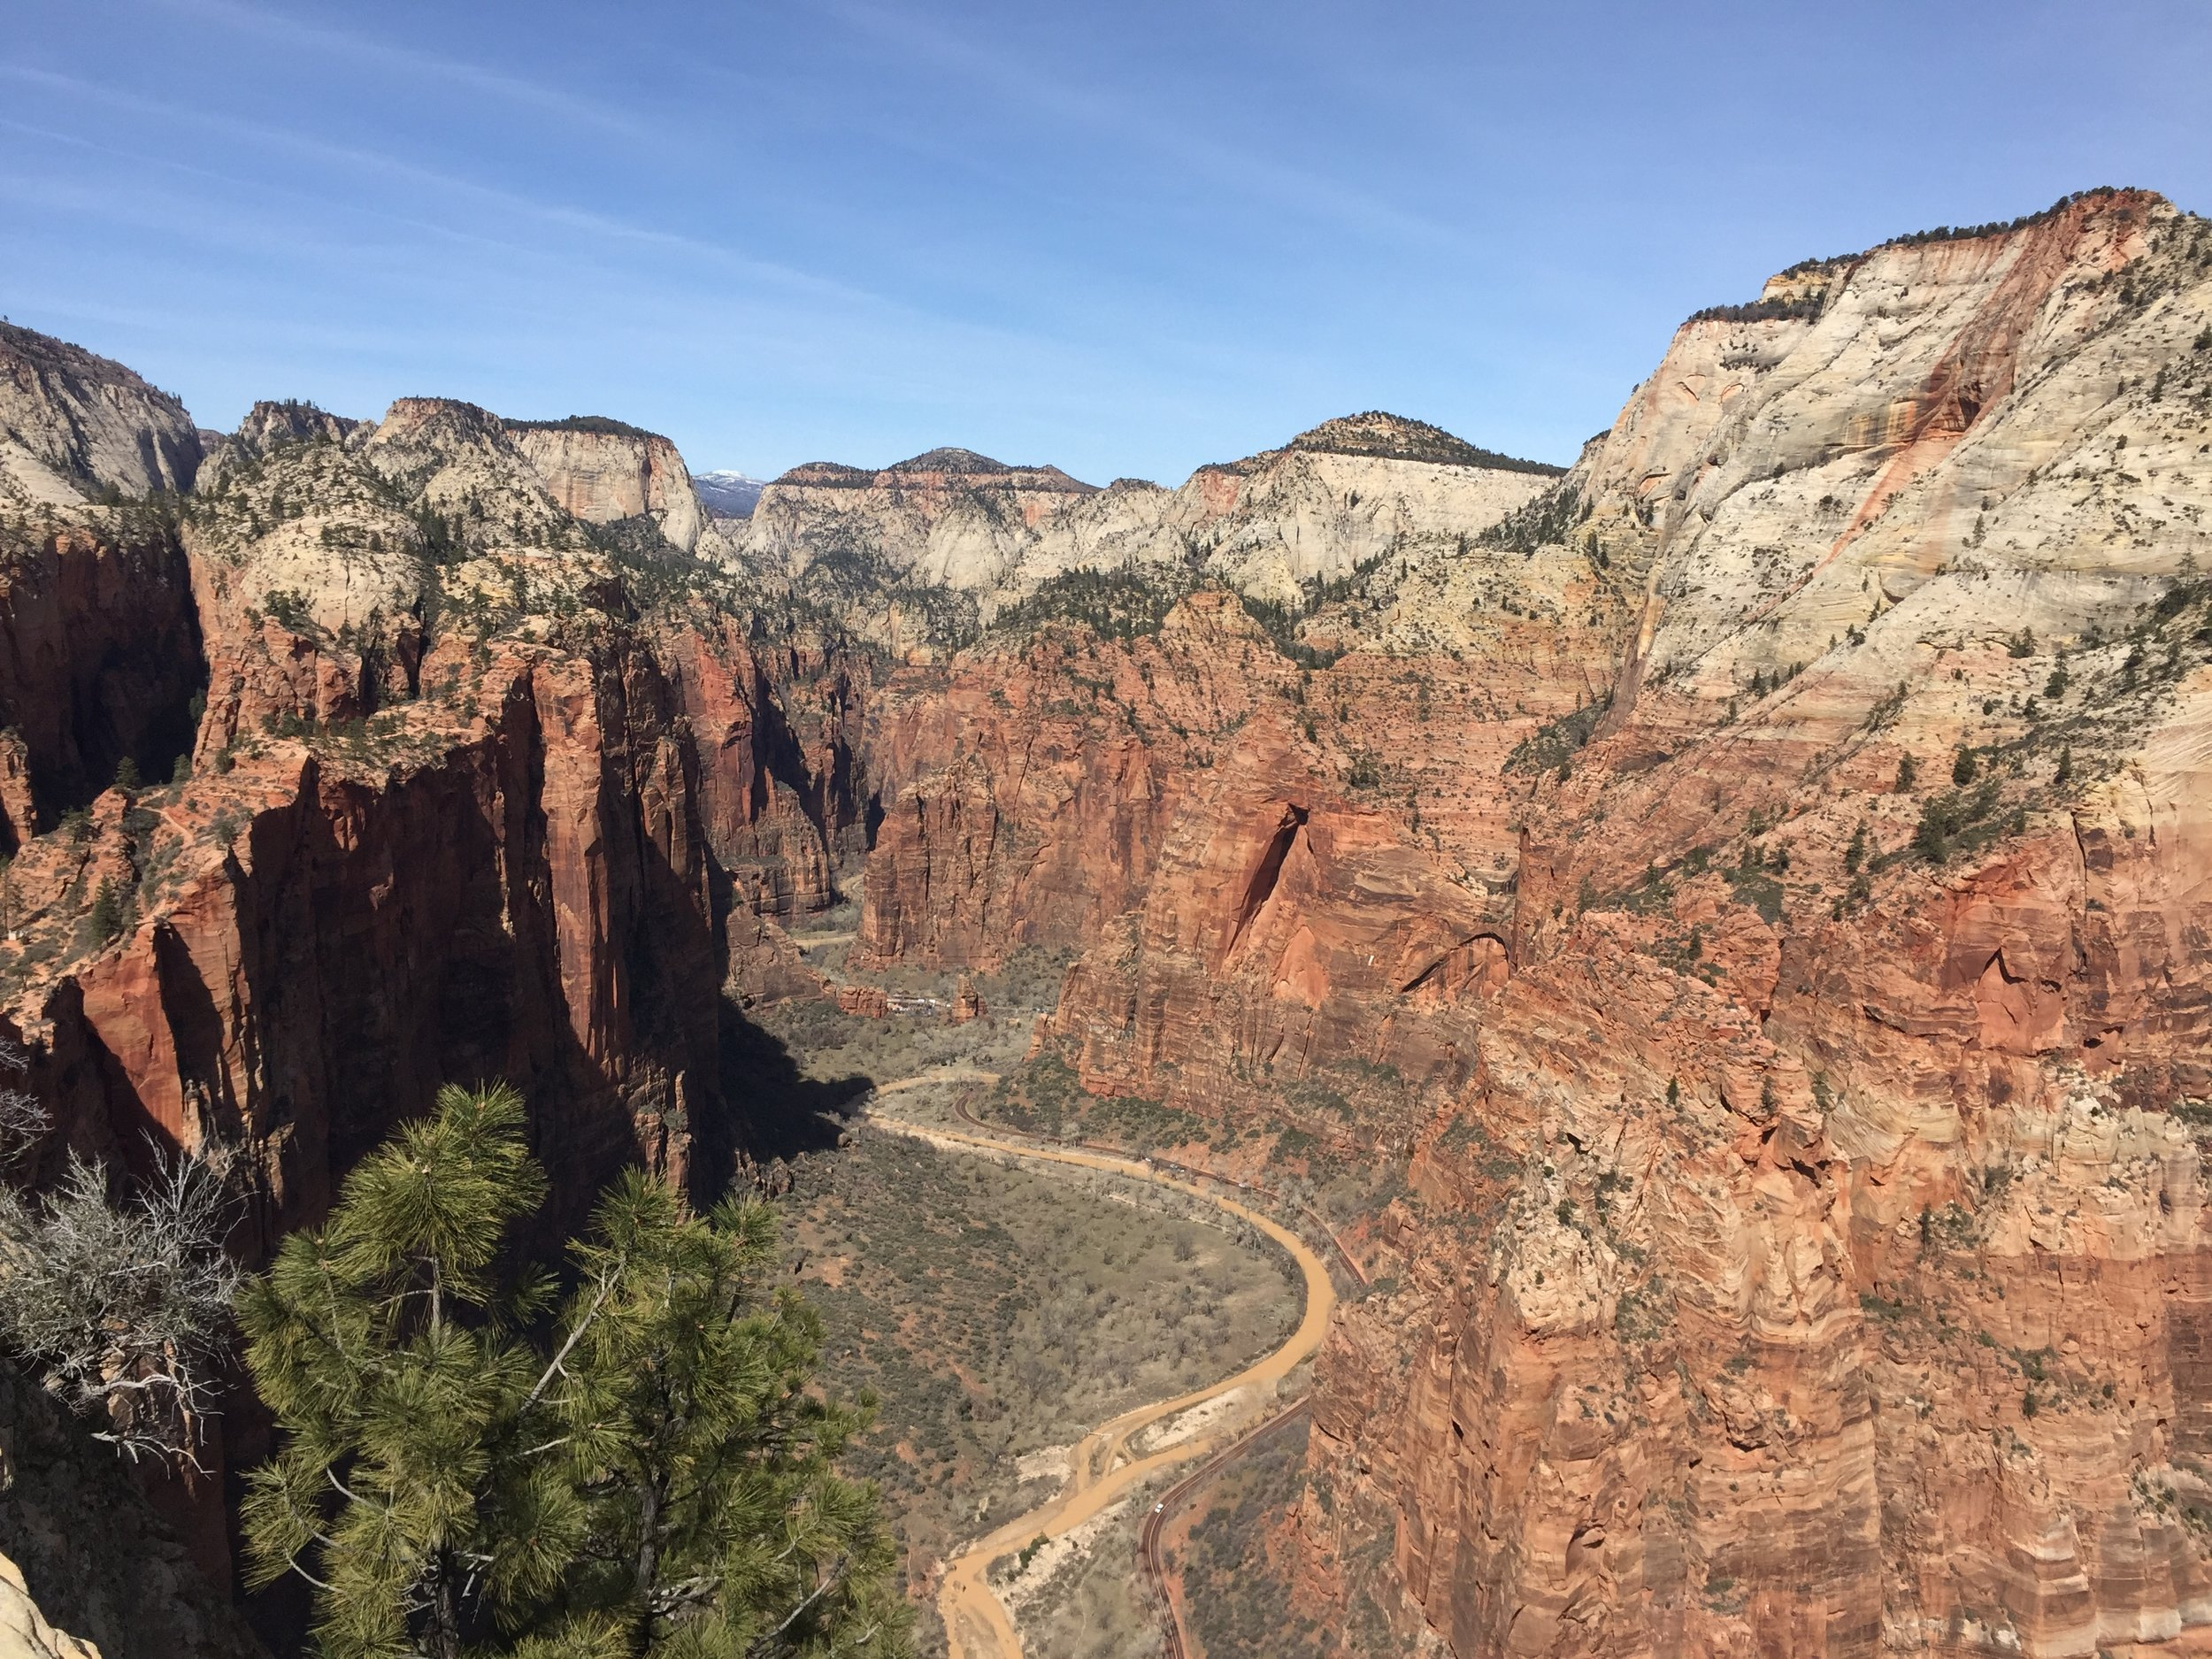 Sunday, May 6, 2018 - BreakfastGroup excursion to Zion National ParkDinner out